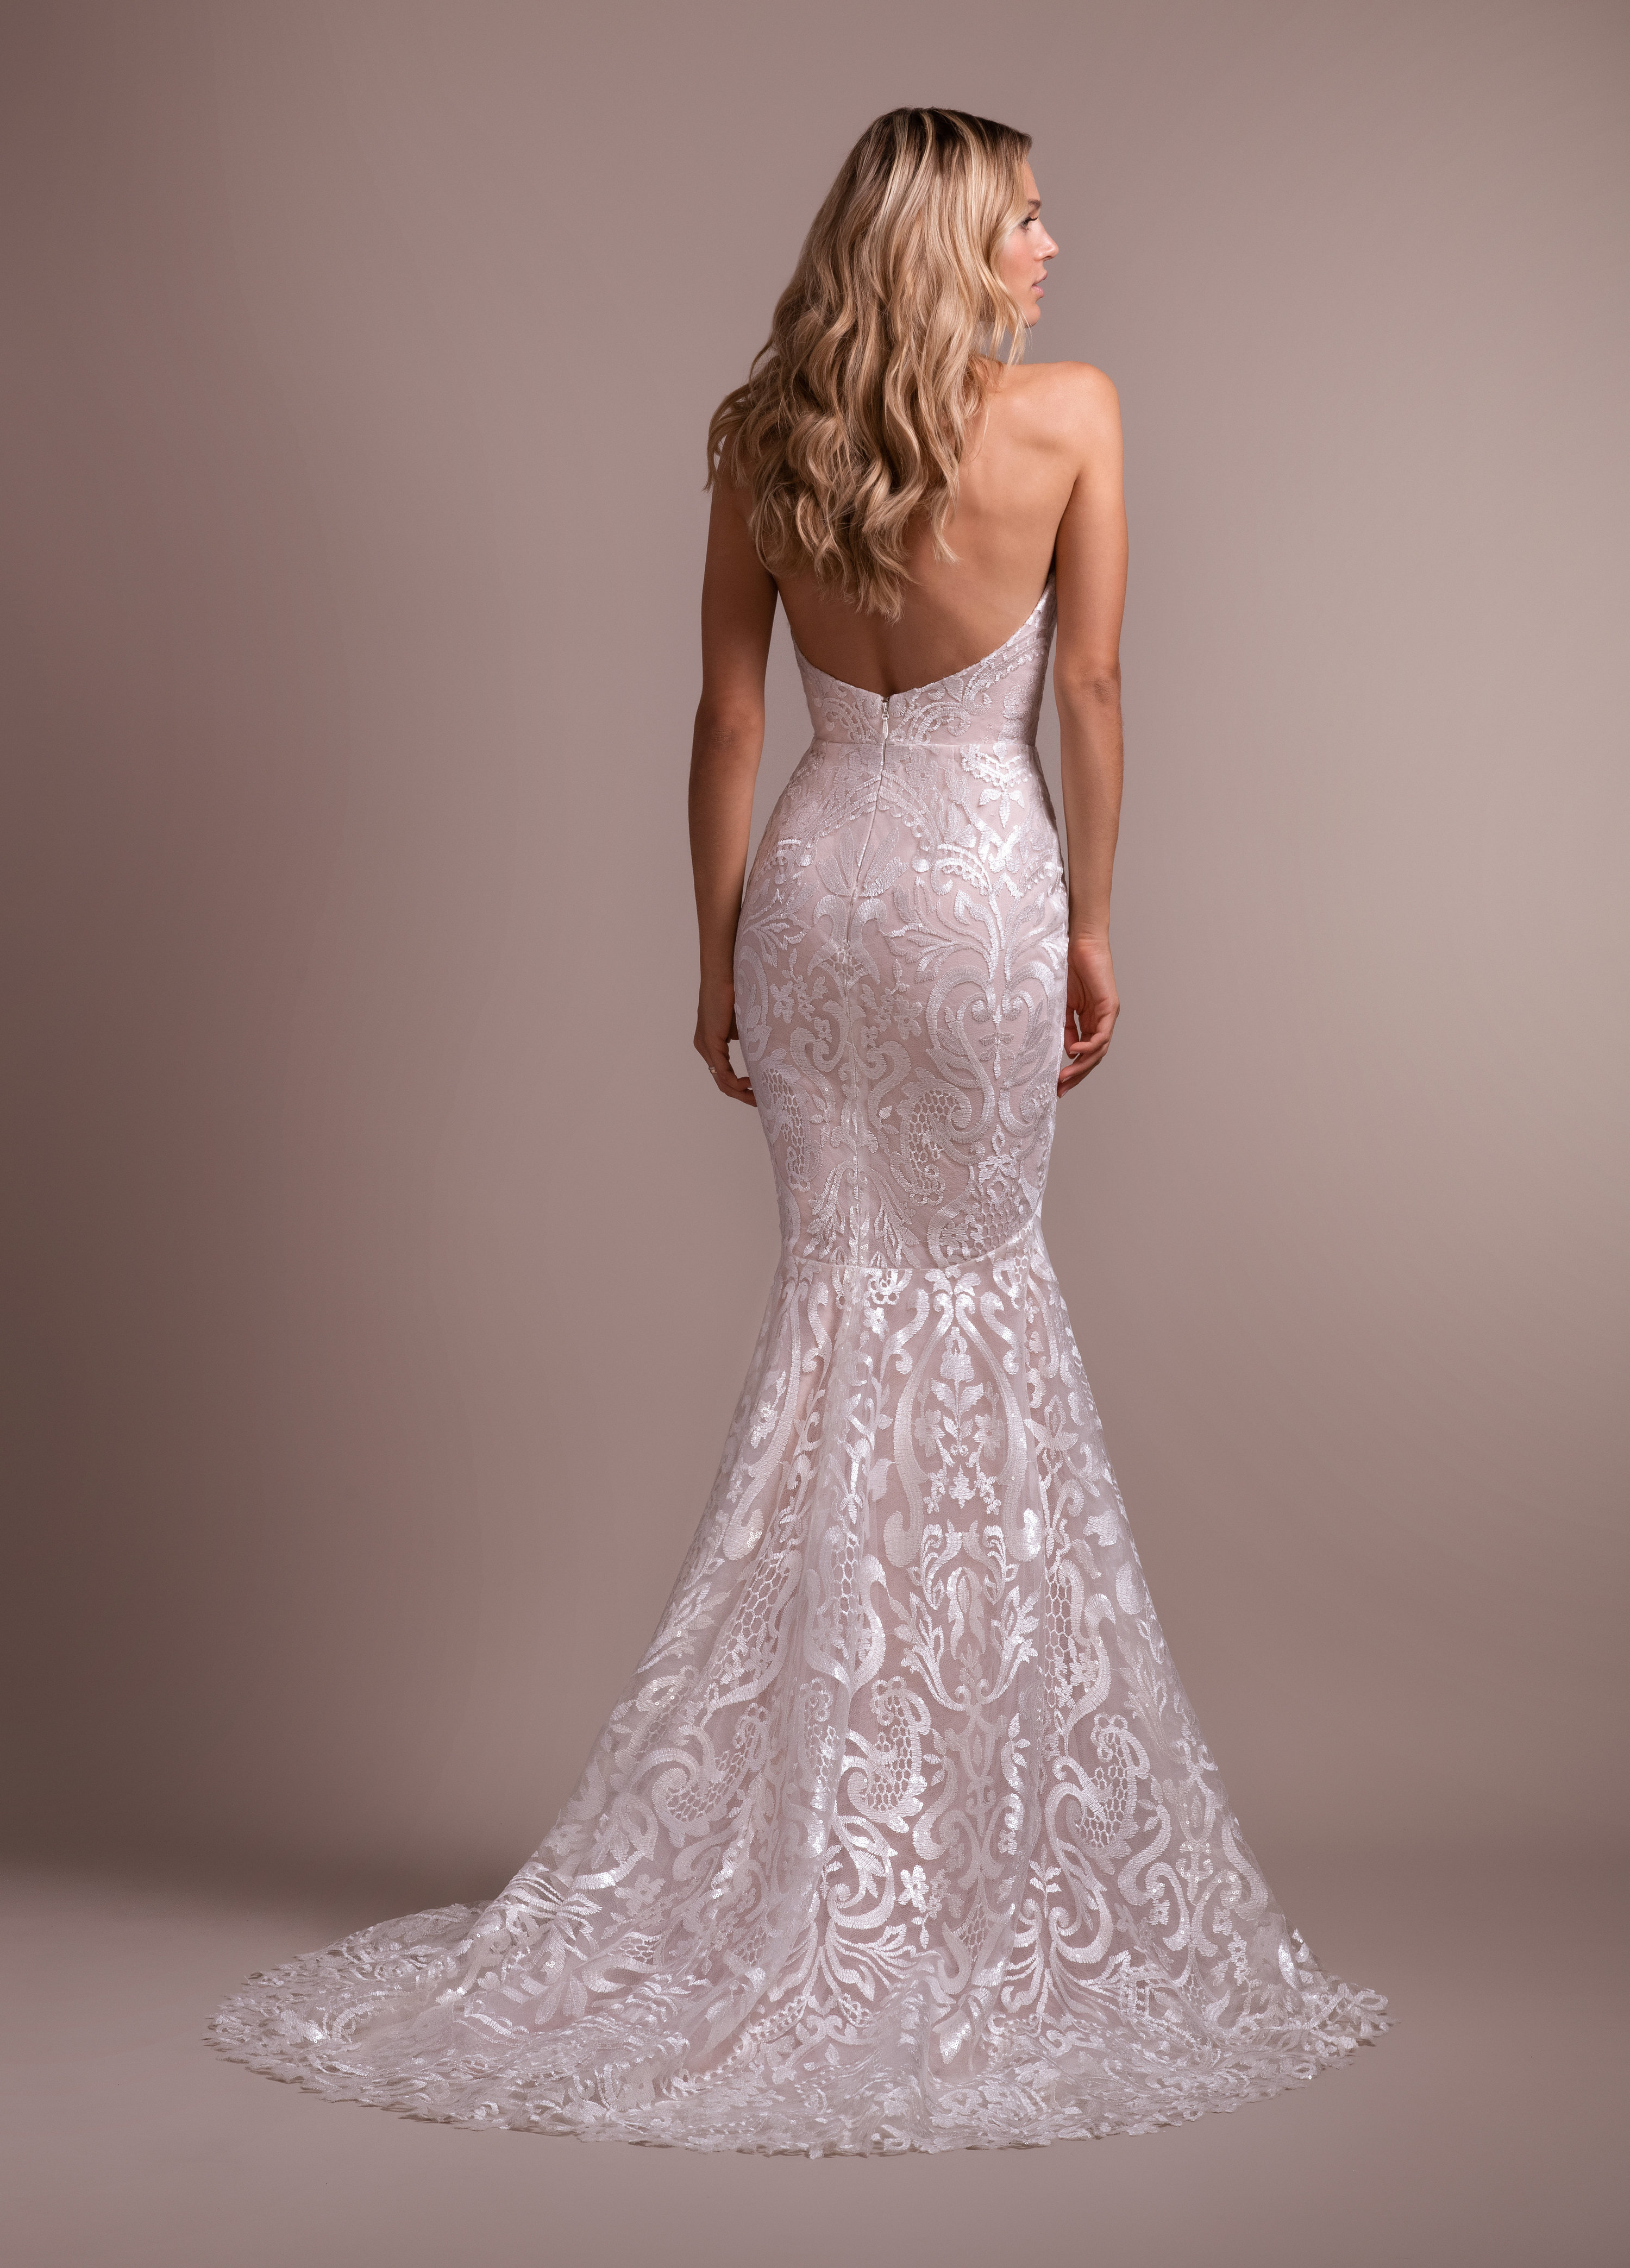 f9419c9b37ce5 Bridal Gowns and Wedding Dresses by JLM Couture - Style 6914 Elke